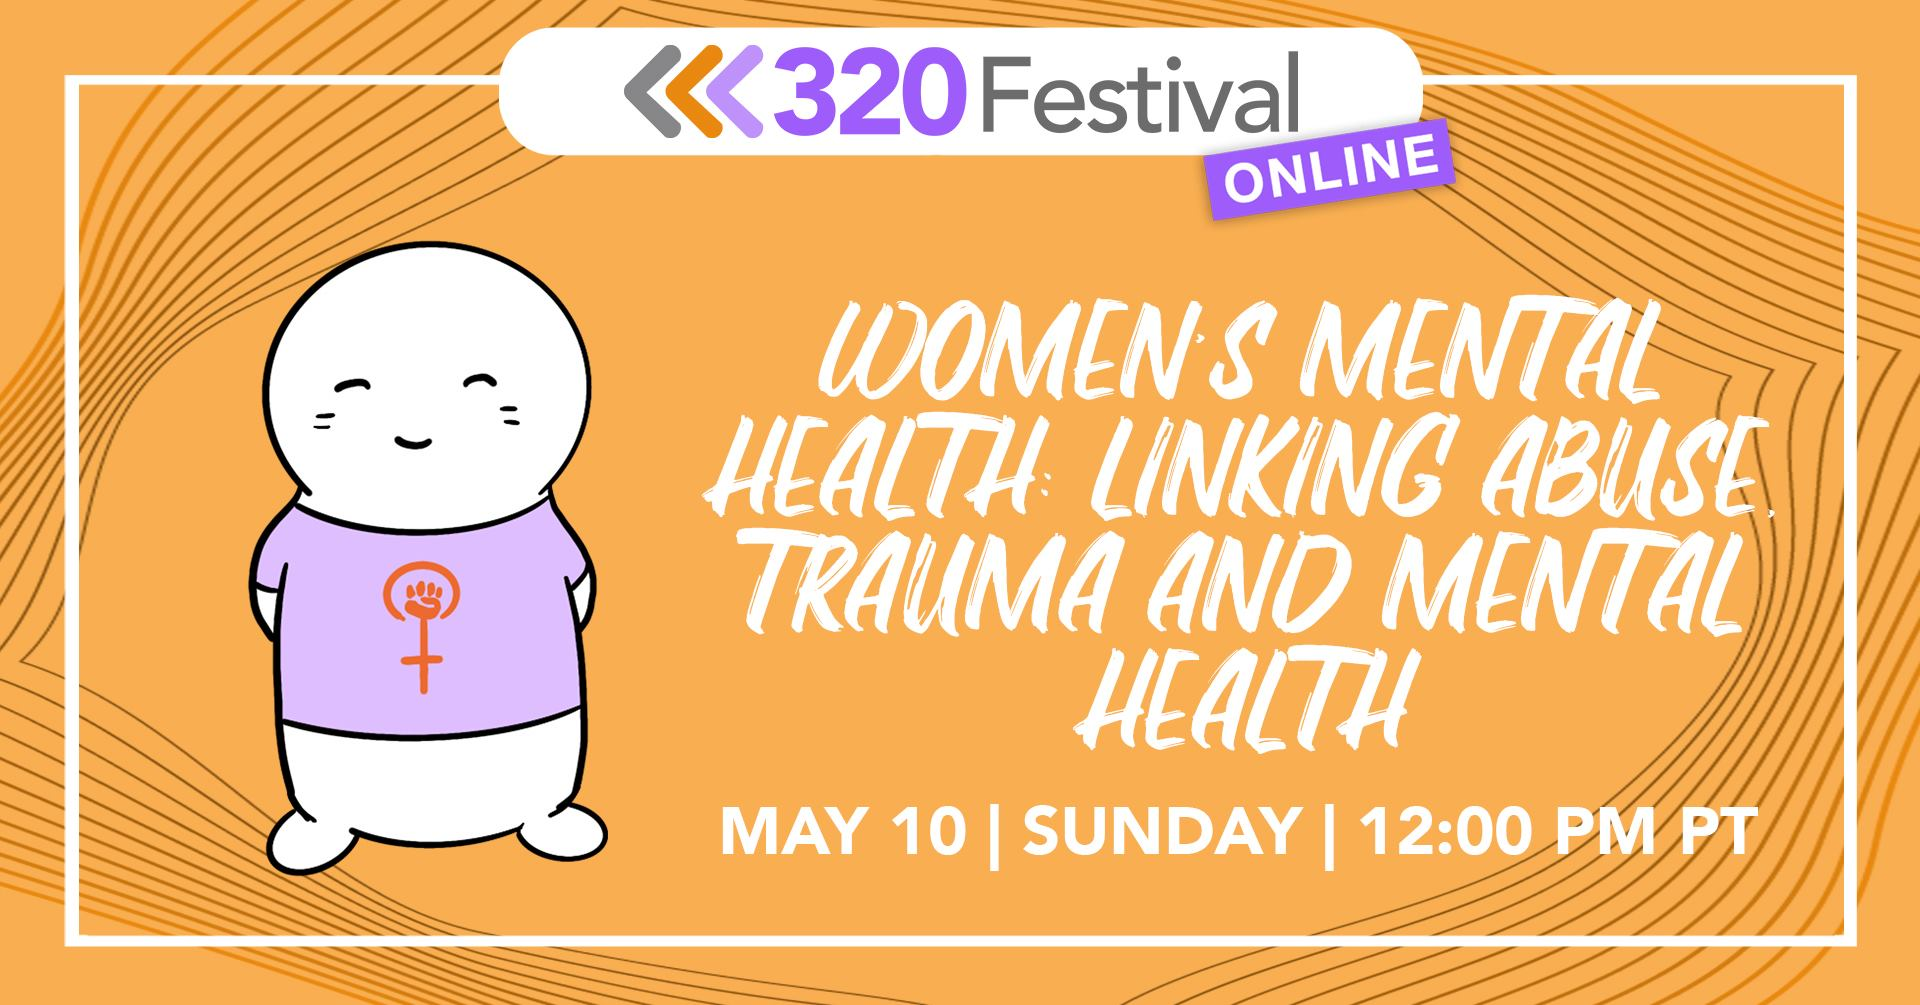 Womens Mental Health: linking abuse and trauma